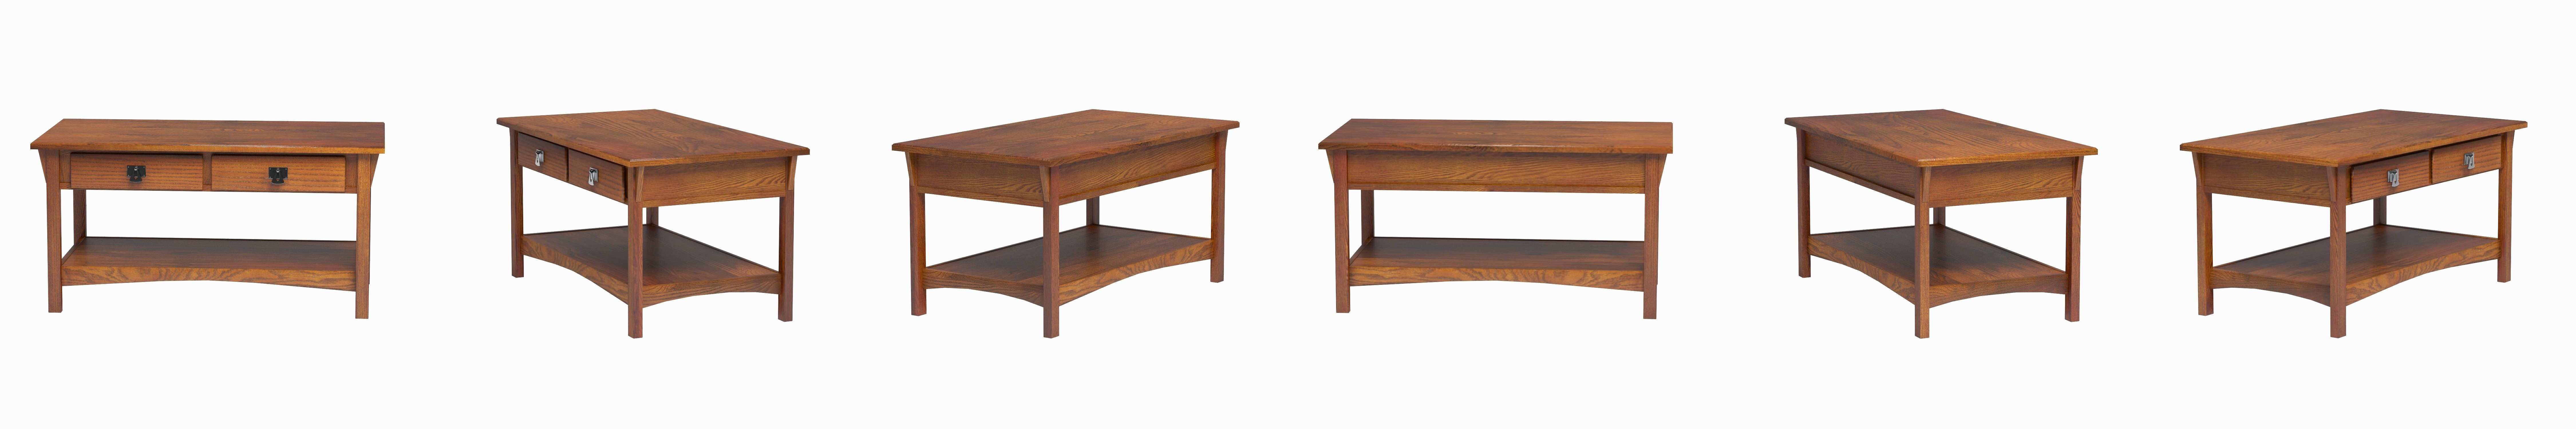 Solid Wood End Table Home Decor Color Plus fortable Oak Wood